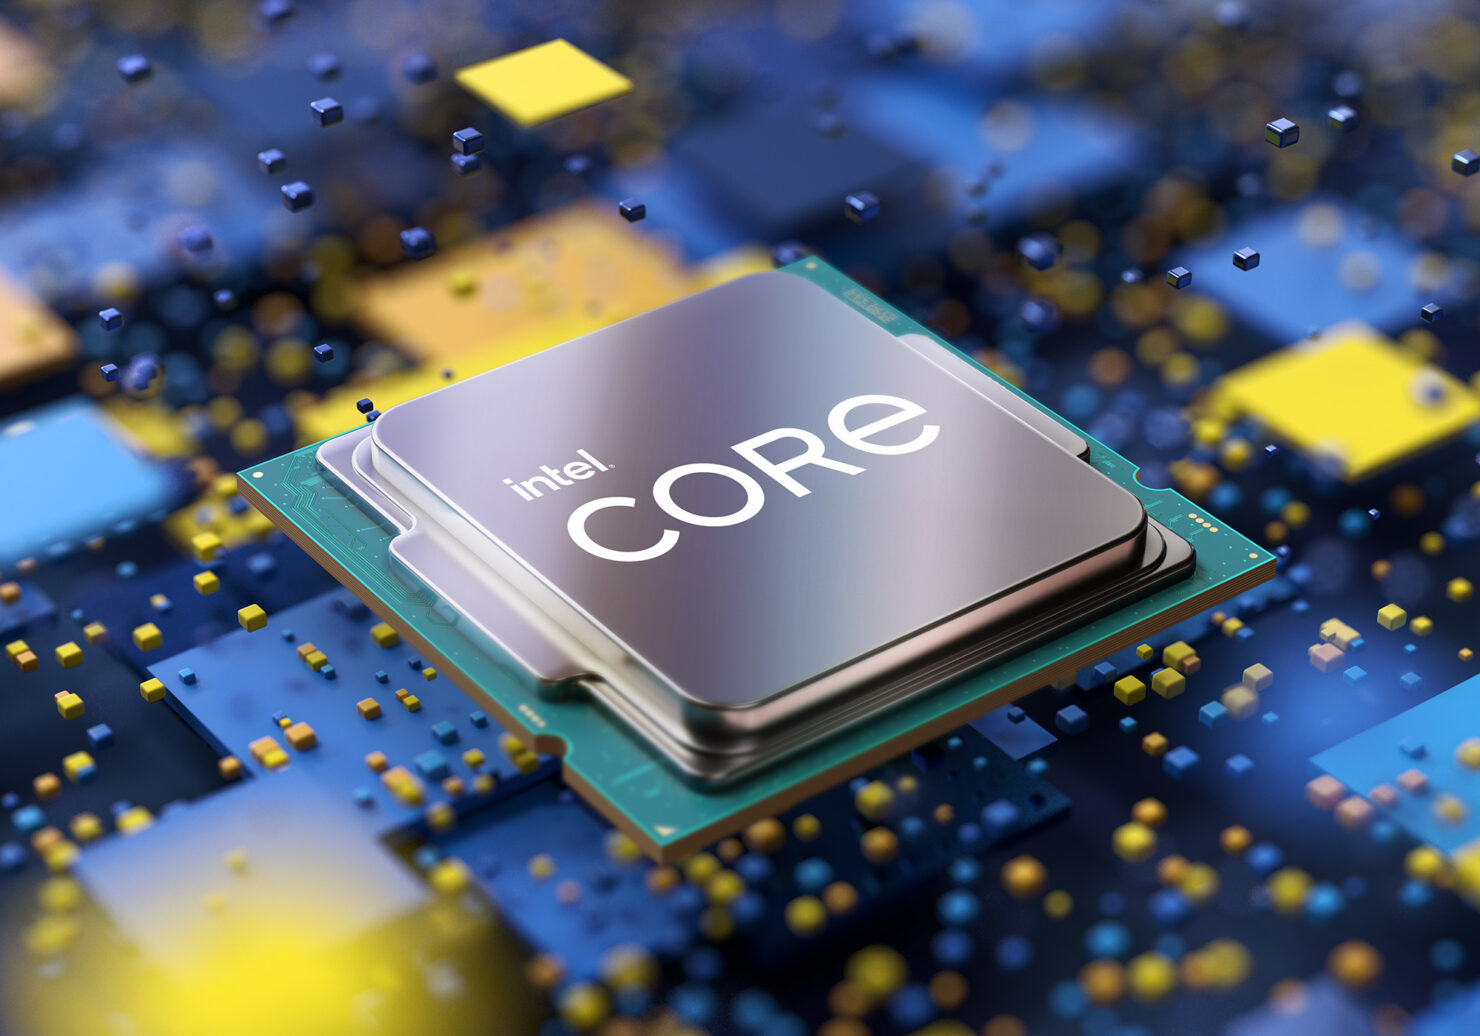 Intel Rocket Lake Desktop CPUs Finally Receive Their First Official Graphics Driver For Iris Xe GPU